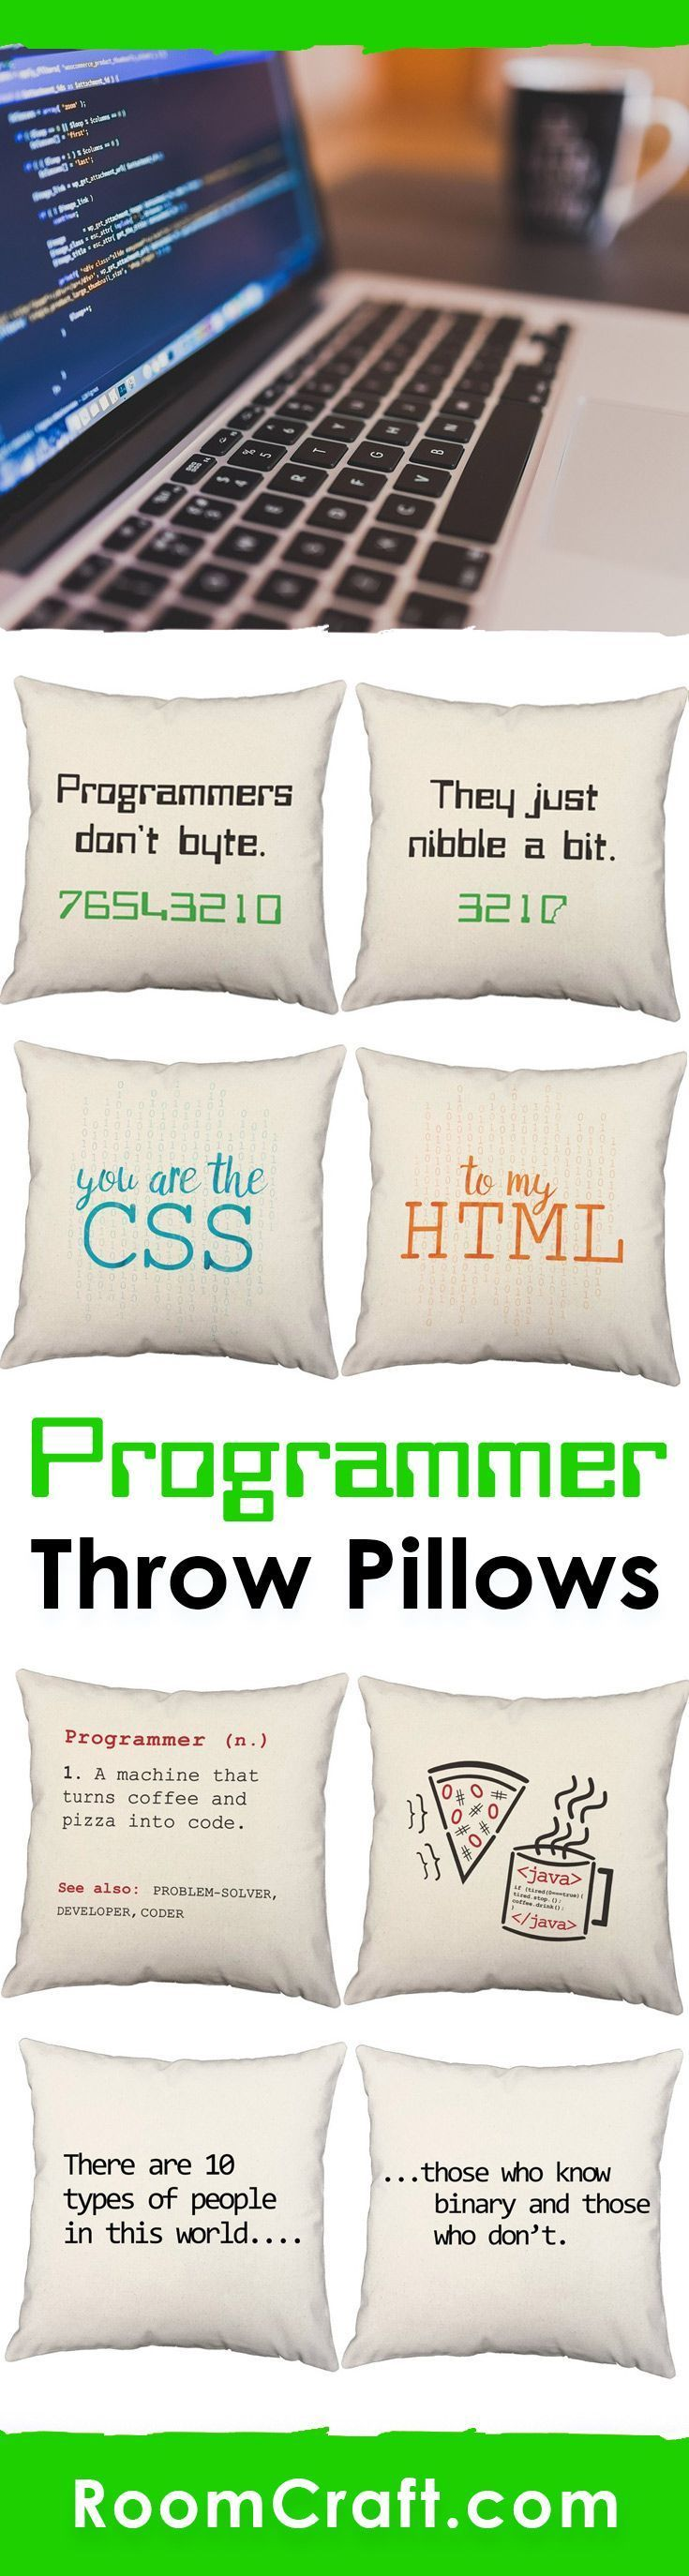 10 Best Fucku Images On Pinterest Computers Knowledge And Android Sticker Kode D7 Computer Programmers Unite If You Love Coding These Techie Throw Pillows Will Be The